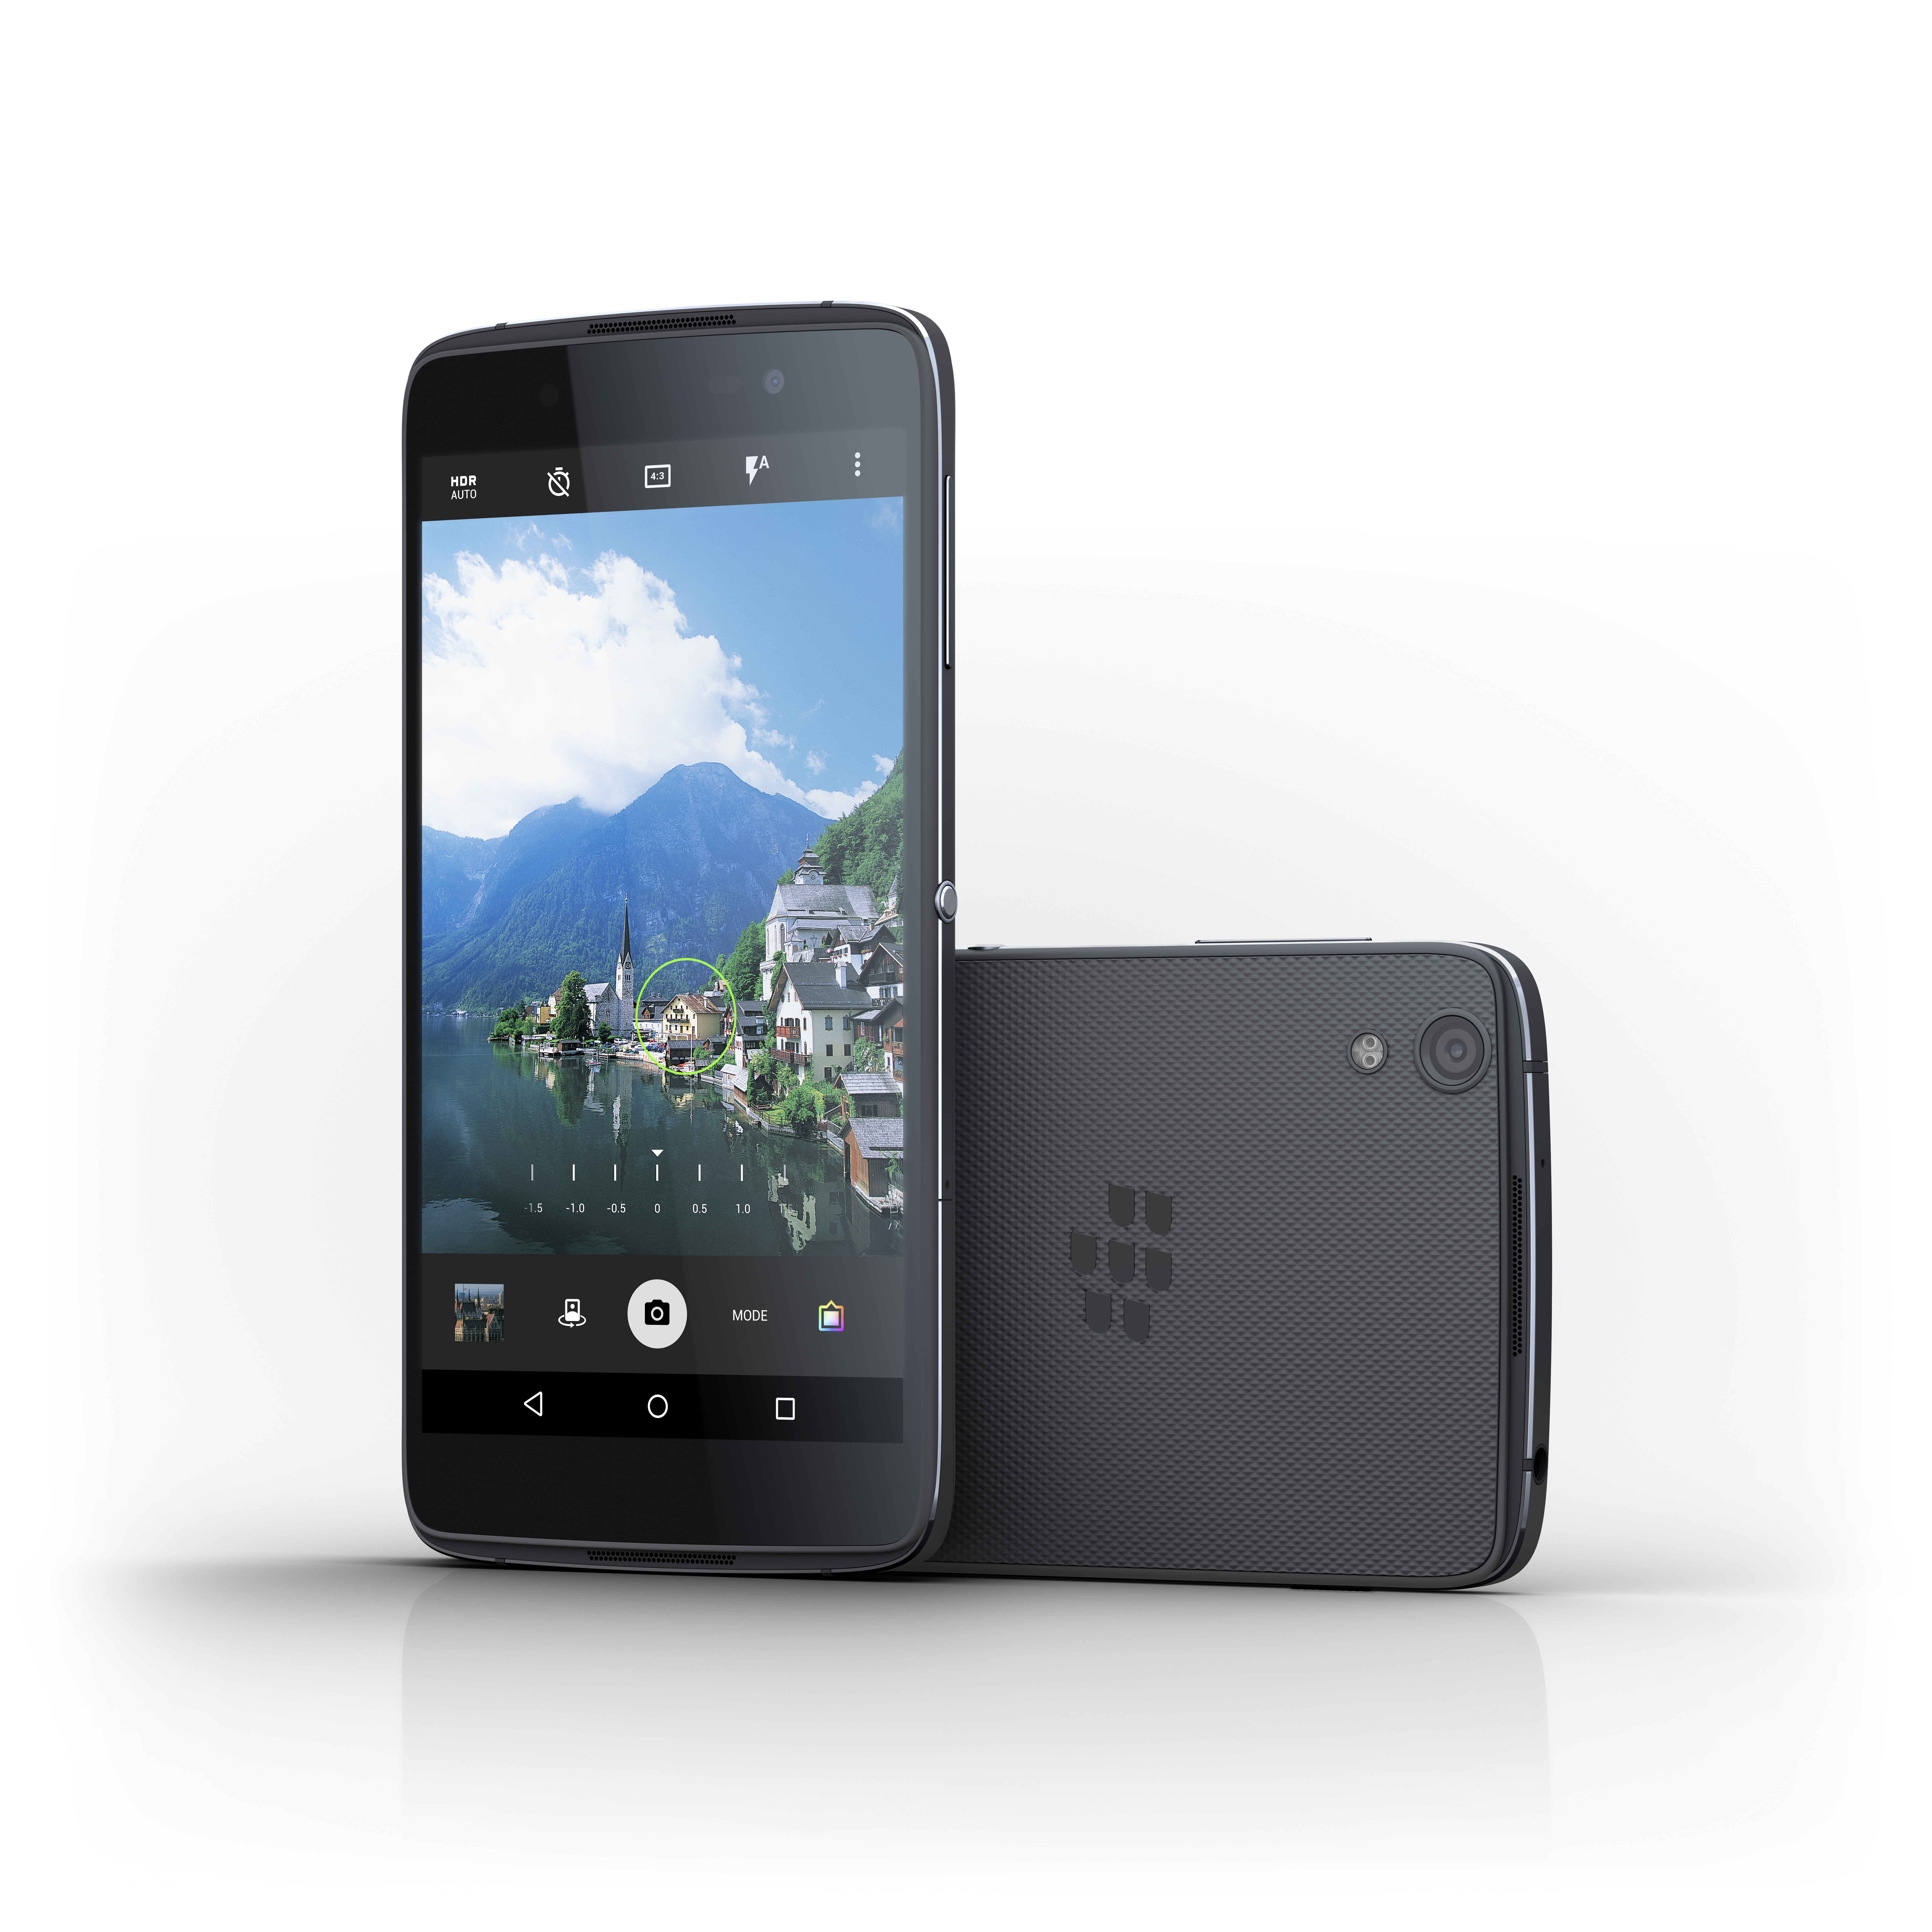 BlackBerry DTEK50 is the 'world's most secure Android